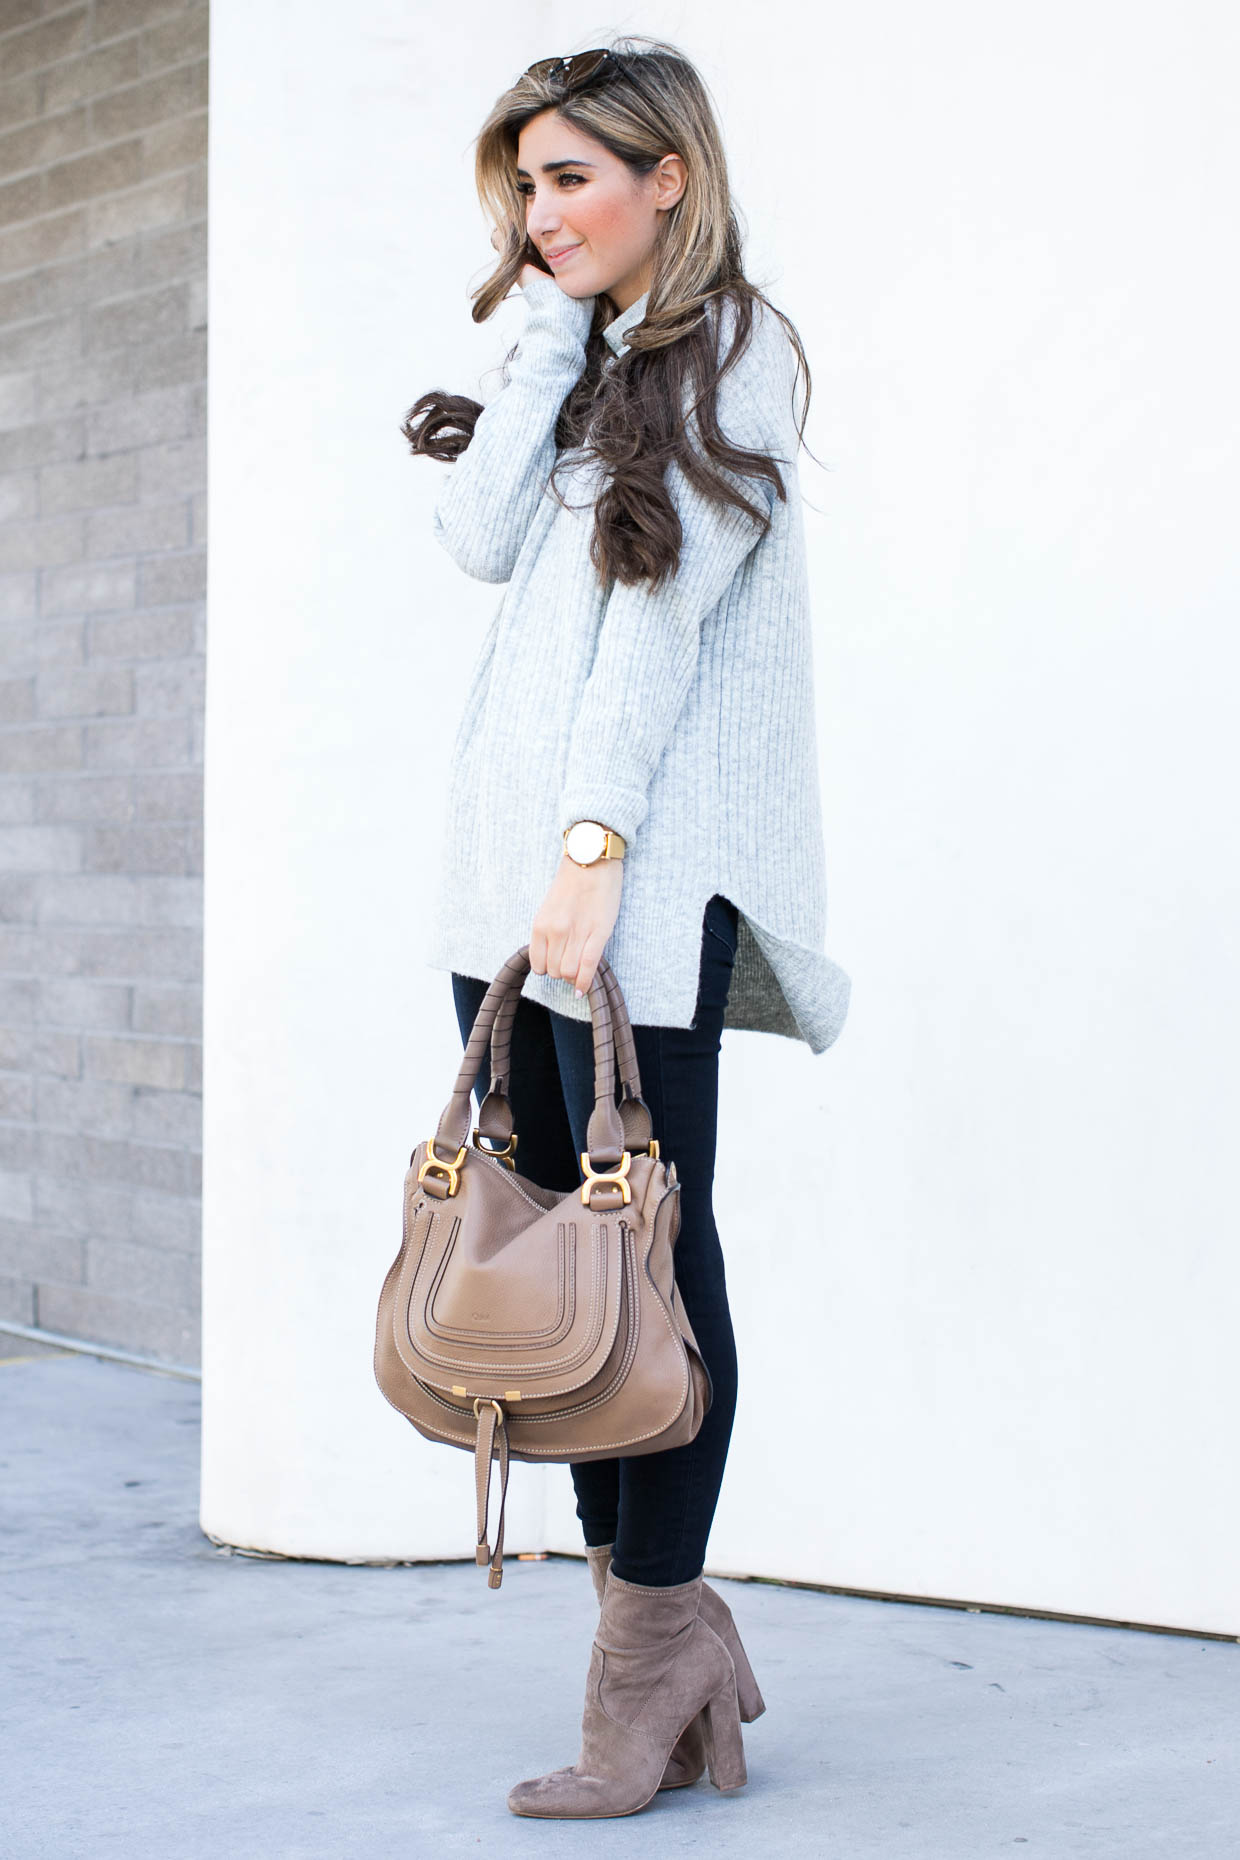 Fashion blogger The Darling Detail wears Topshop Oversized Funnel Neck Sweater, FRAME 'Le High Skinny' High Rise Crop Jeans (Sterling), Steve Madden Edit Bootie, LE SPECS 'The Prince' 57mm Sunglasses, Chloe 'Marcie - Small' Leather Satchel, Larsson & Jennings 'Lugano' Mesh Strap Watch